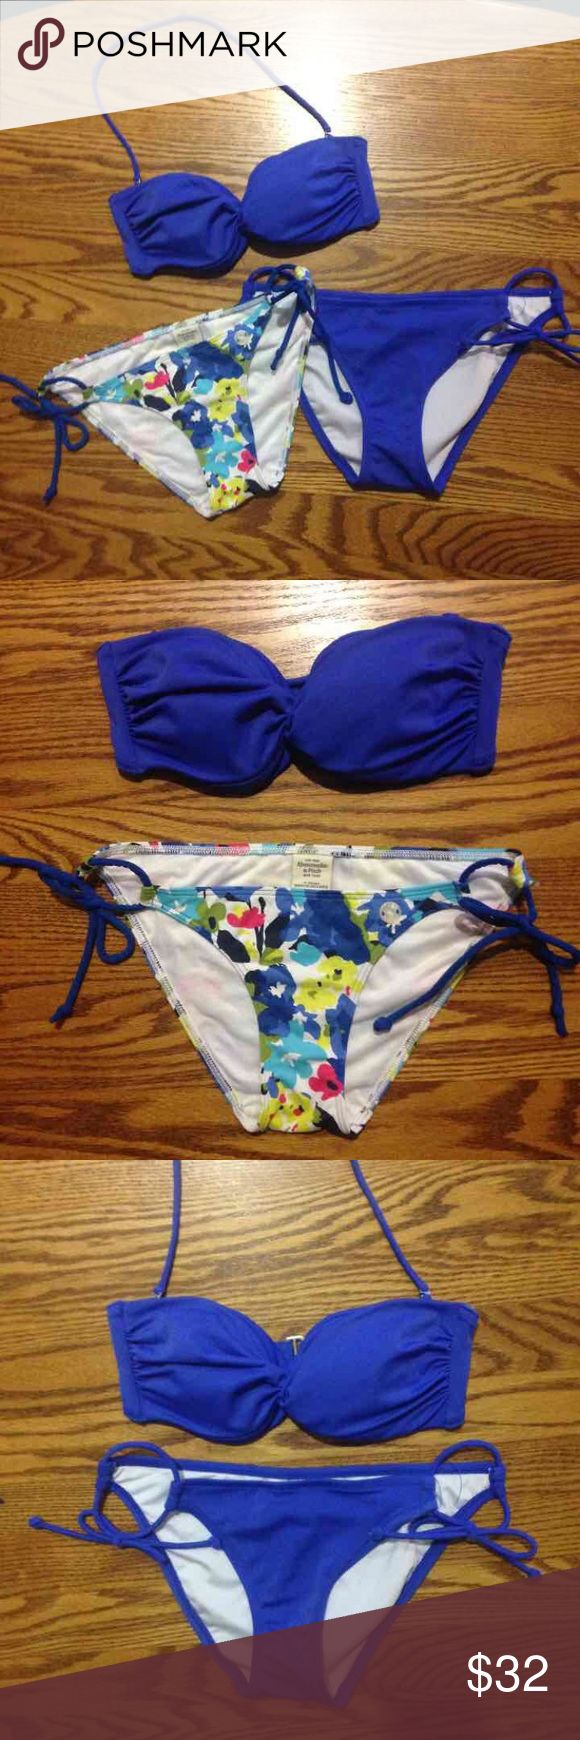 Victoria's Secret + A&F XS bikini set All pieces XS Solid pieces from Victoria's Secret NWOT Abercrombie & Fitch floral bottoms worn once Top can be worn strapless or halter (vs multiway) Victoria's Secret Swim Bikinis